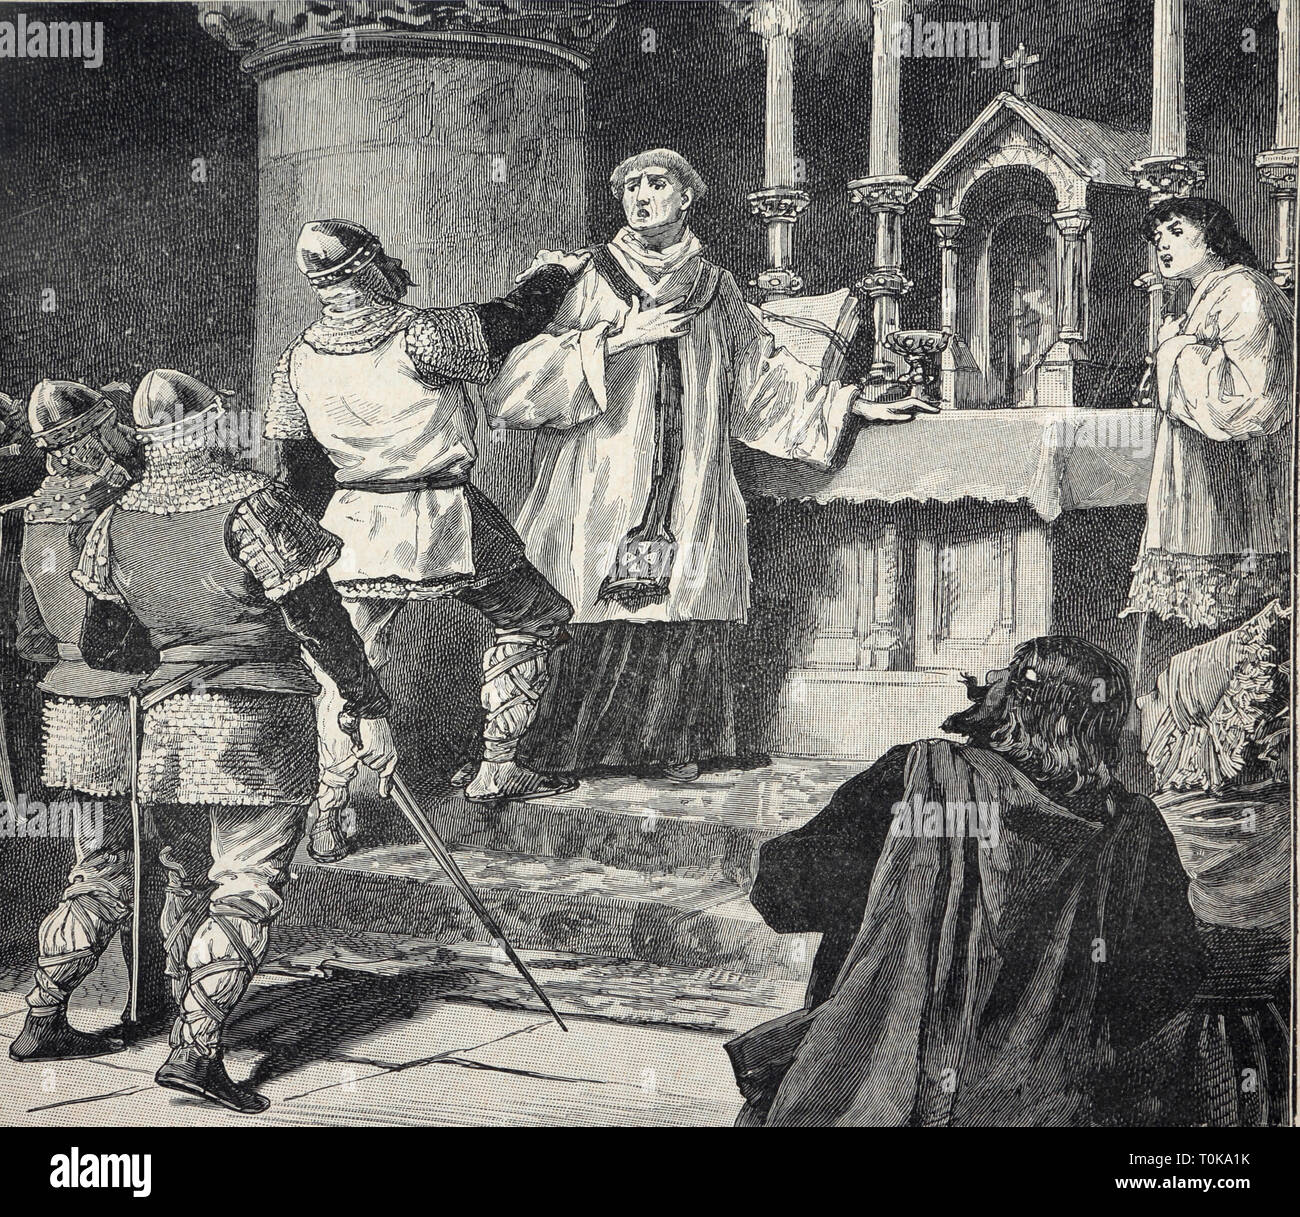 Illustration of the Arrest of Archbishop Geoffrey During Mass in Monastery at Dover in 1191 A.D from the Book Cassel's History of England  - Archbisho - Stock Image